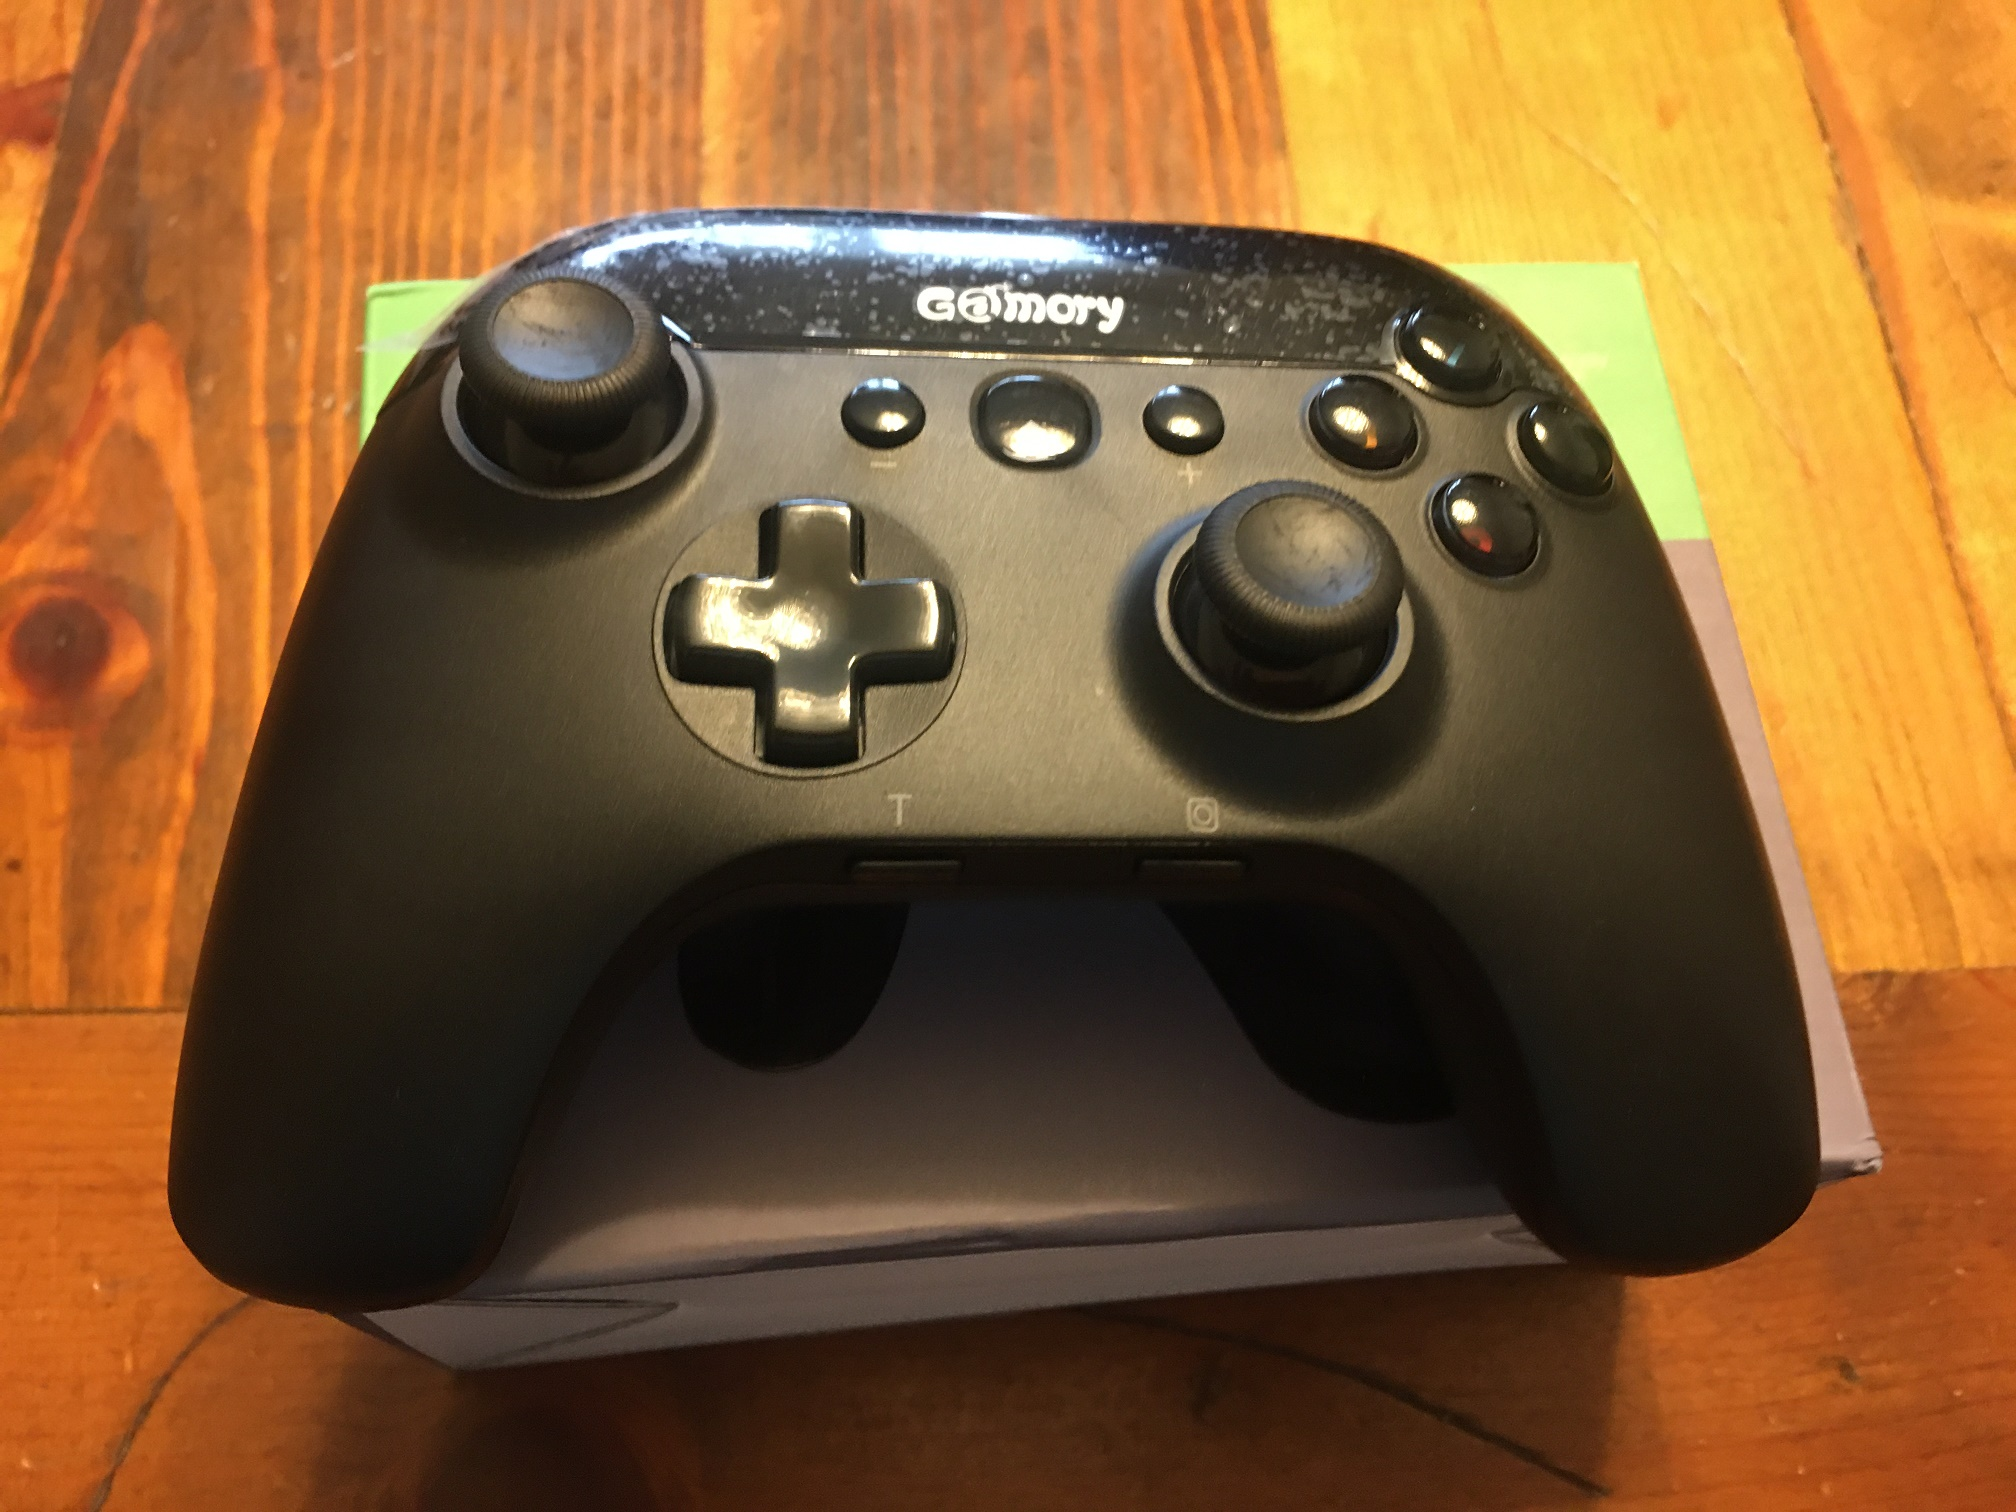 Wireless controller for Nintendo Switch Pro by Gamory